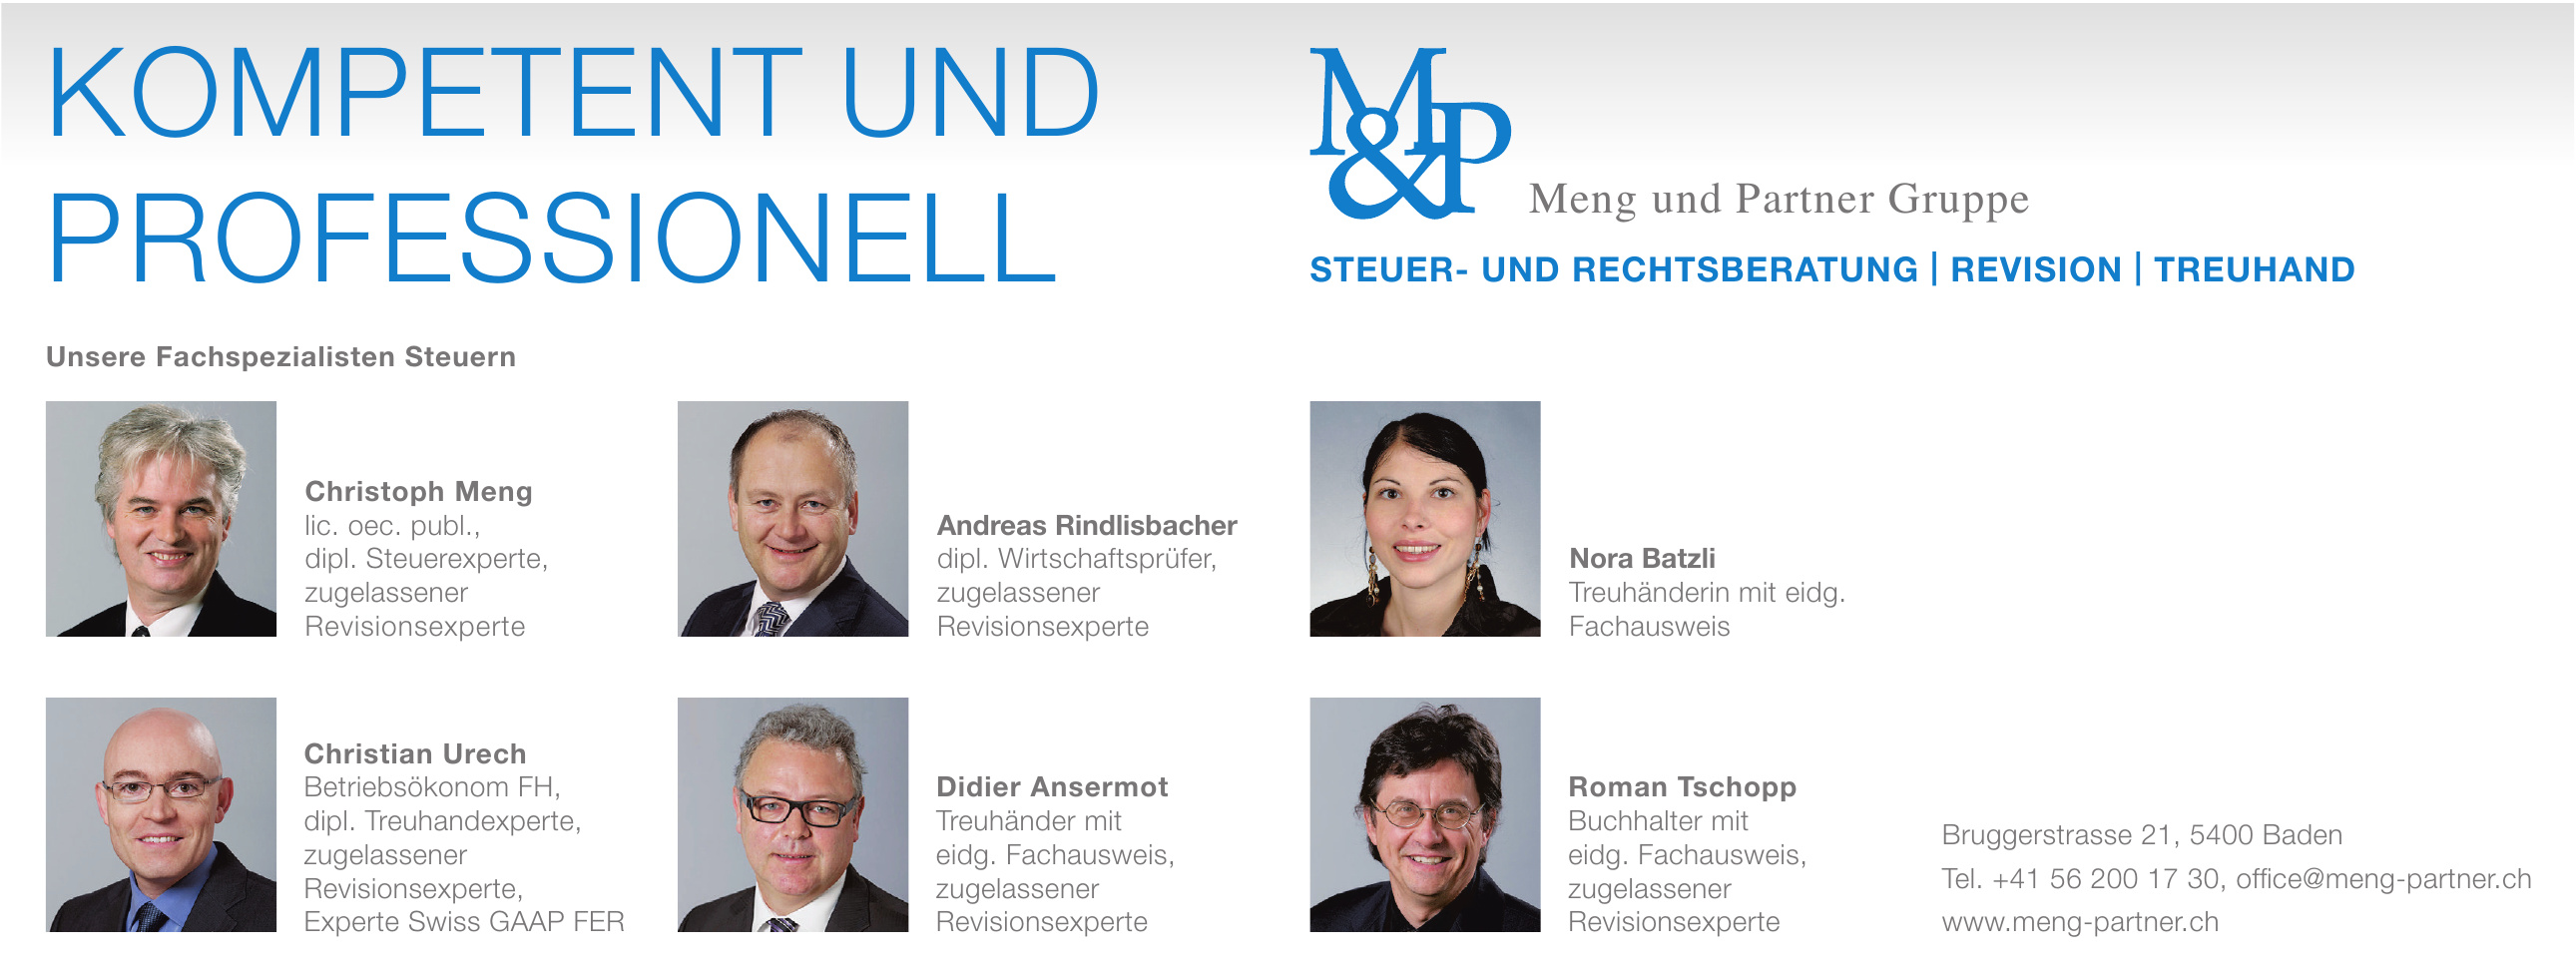 M&P Meng und Partner Gruppe